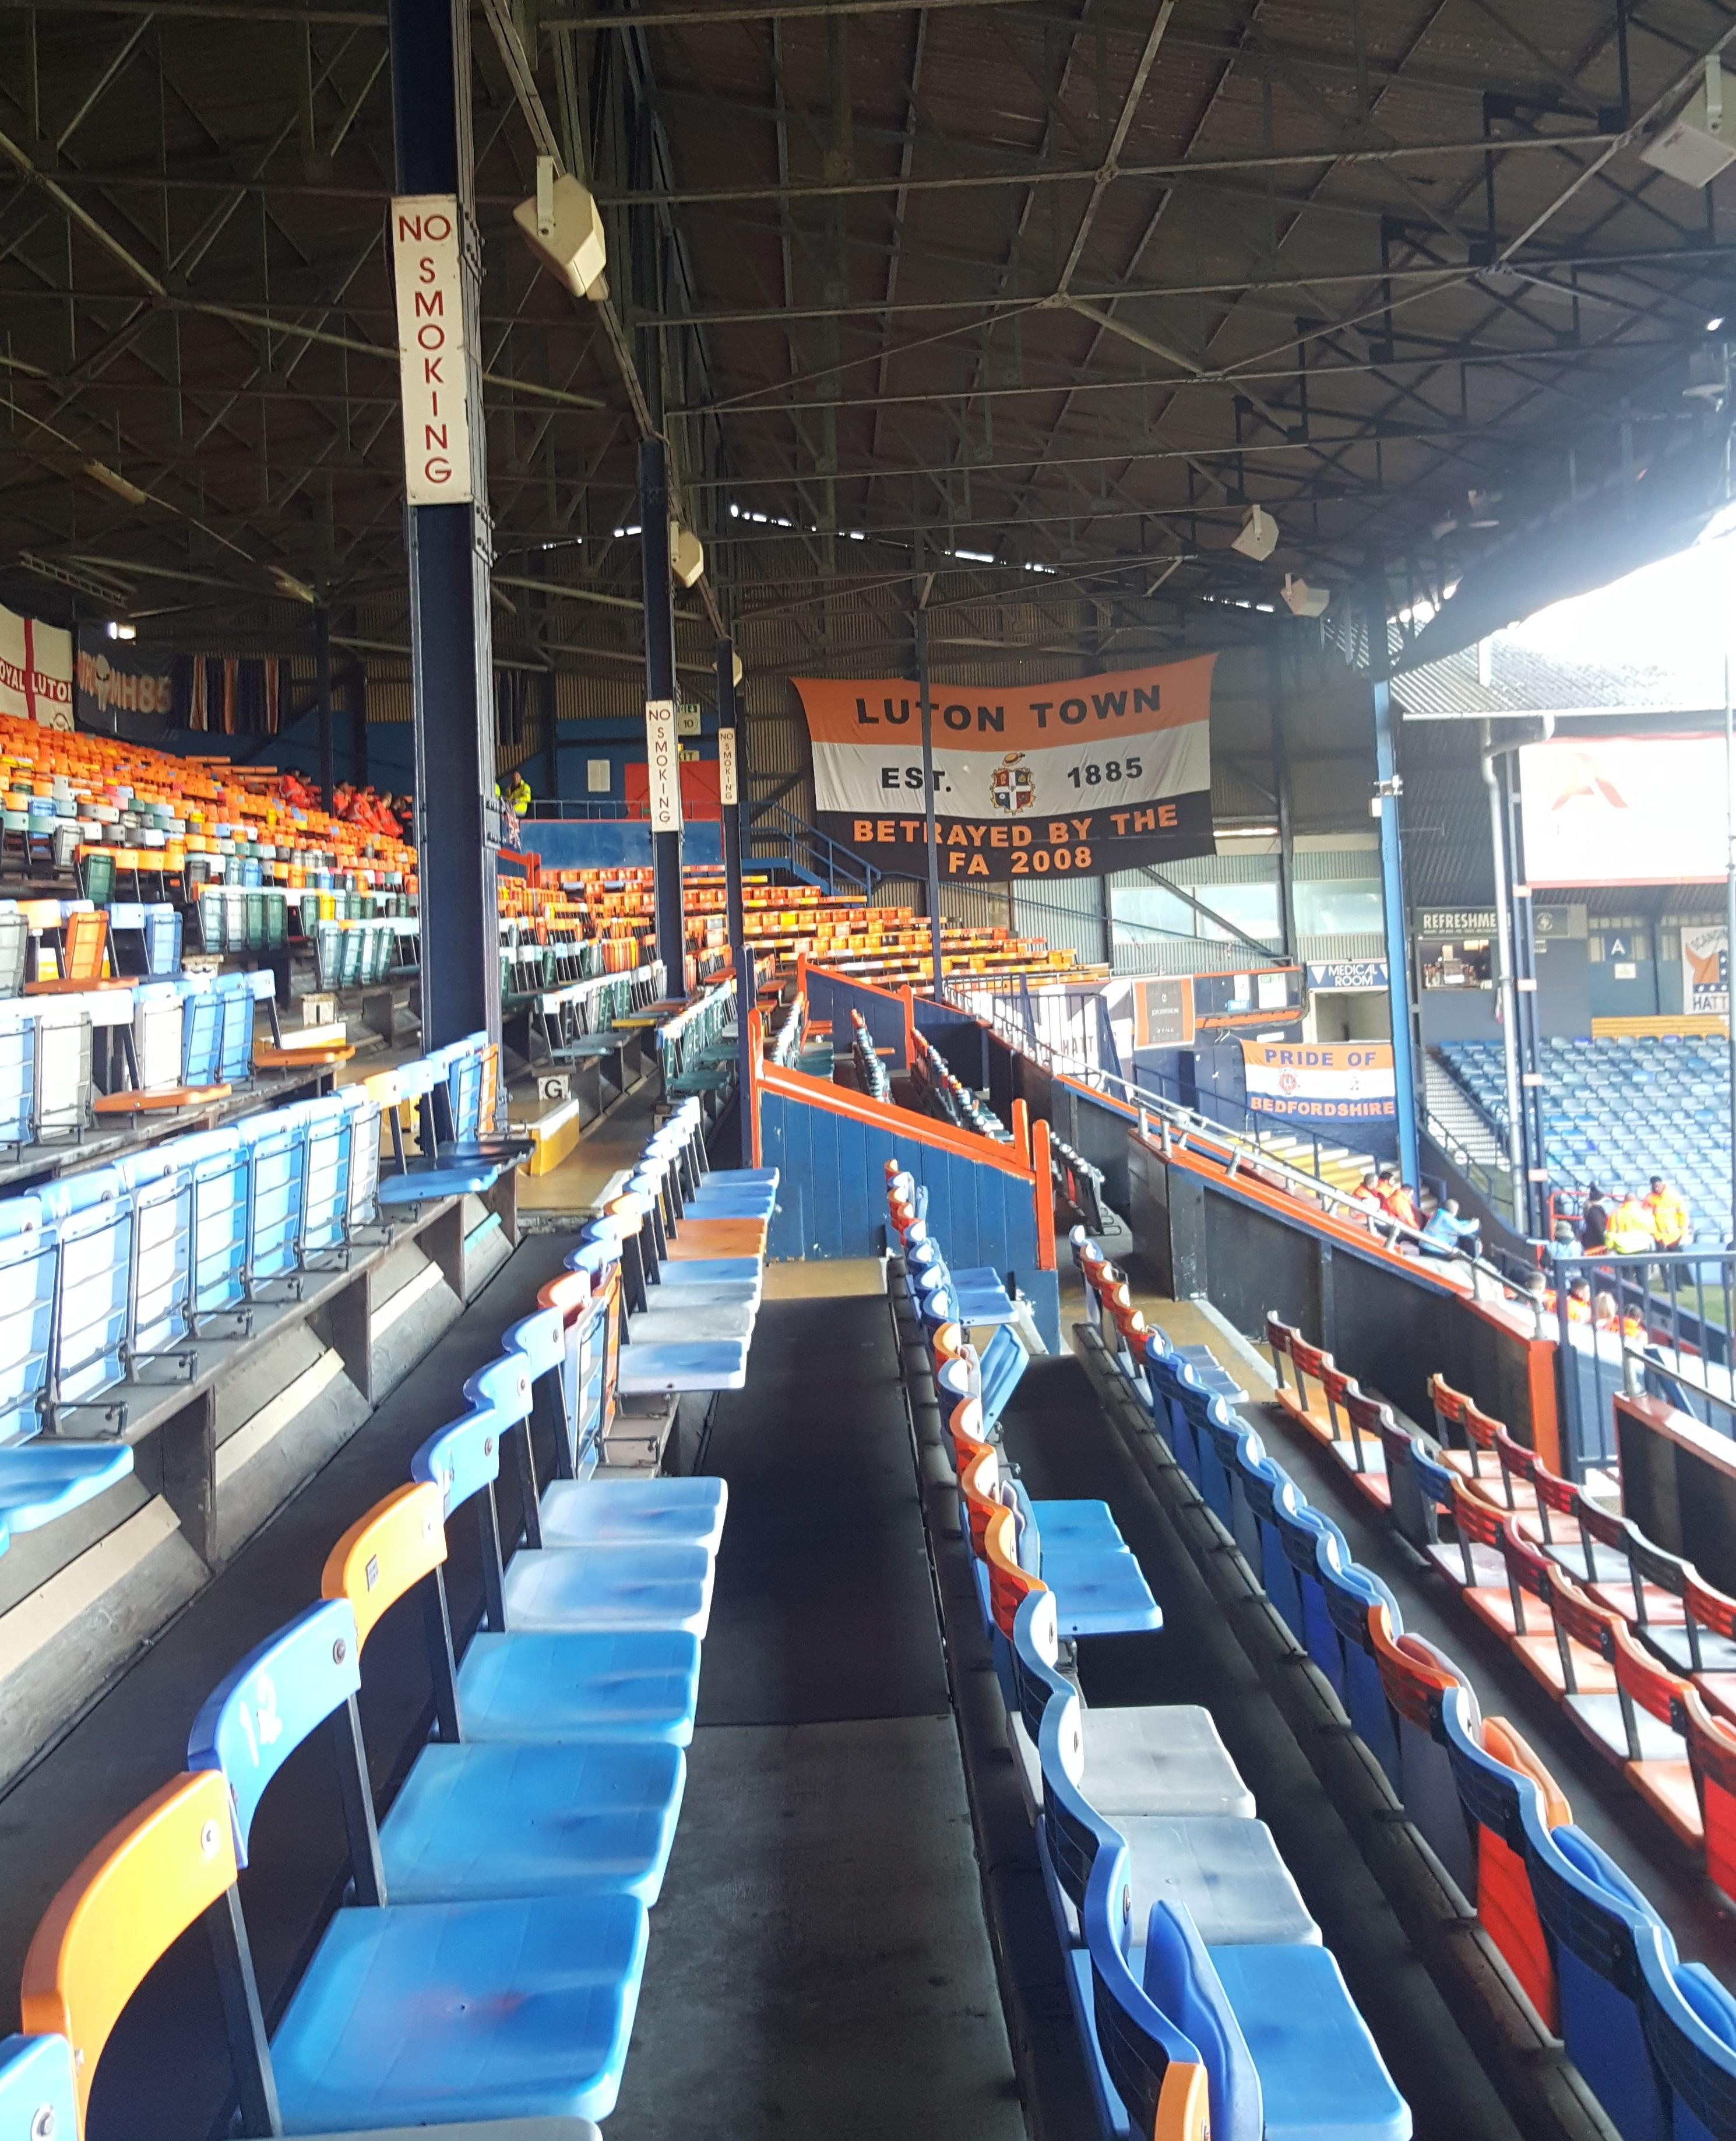 Home of the Hatters